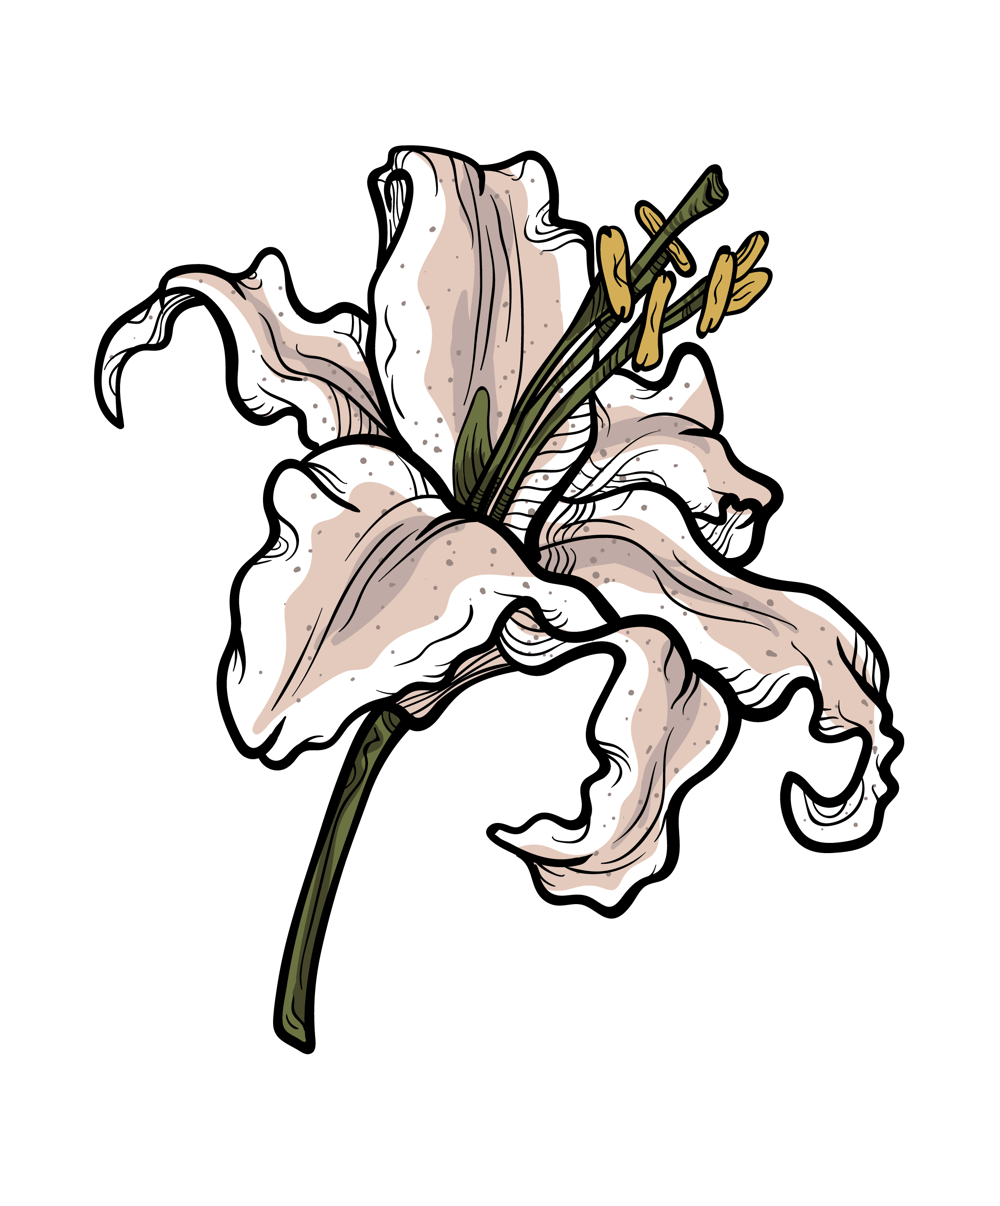 Lily - image 2 - student project